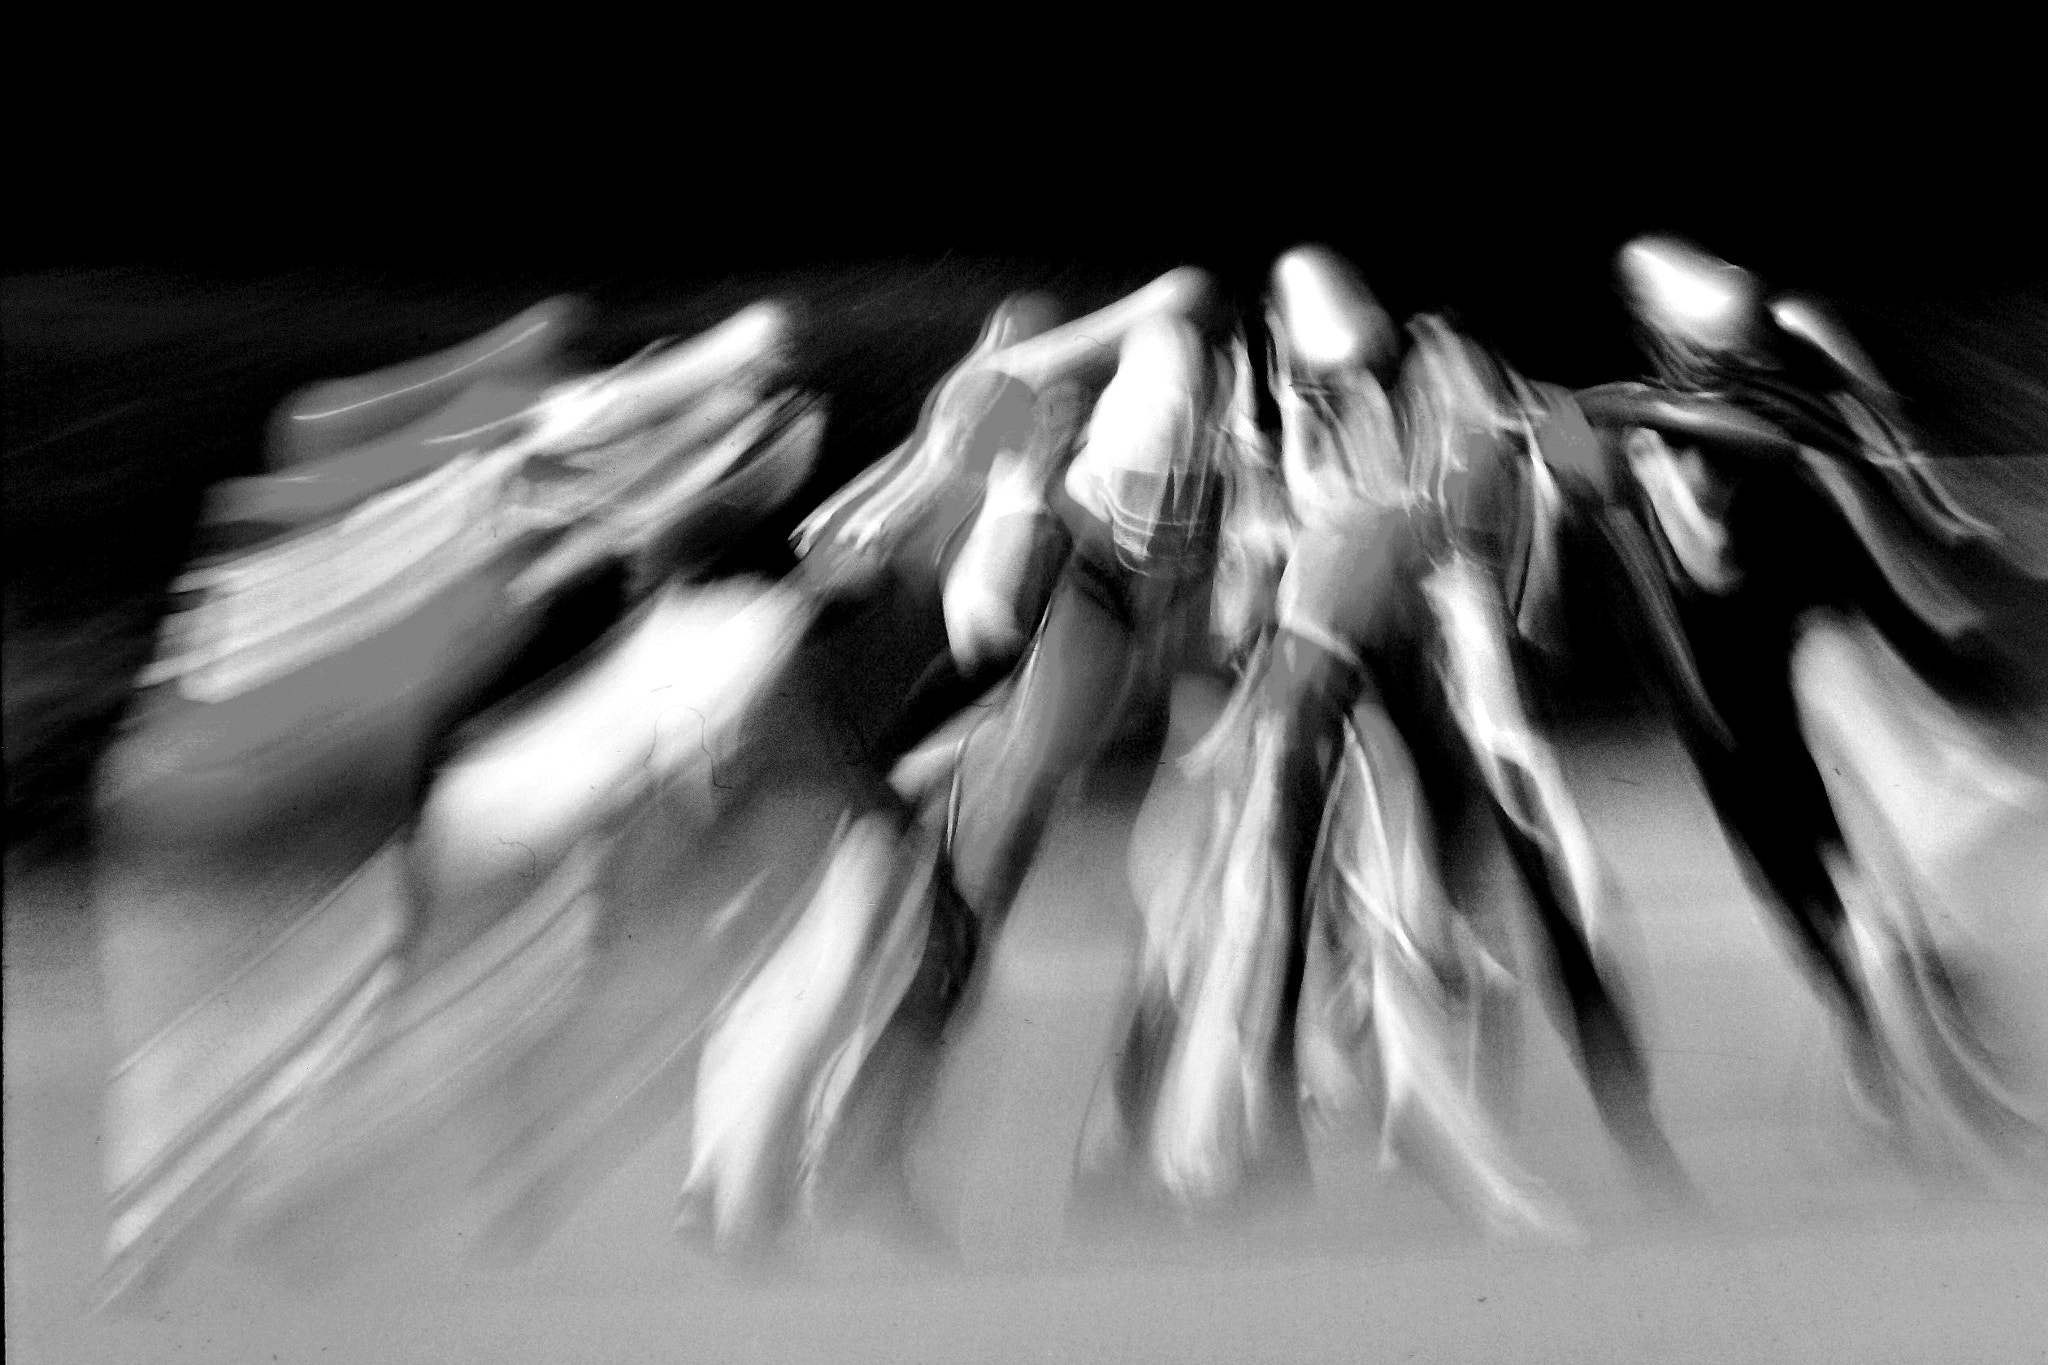 Photograph American Football, abstract, B&W by Hendryk Cantero on 500px